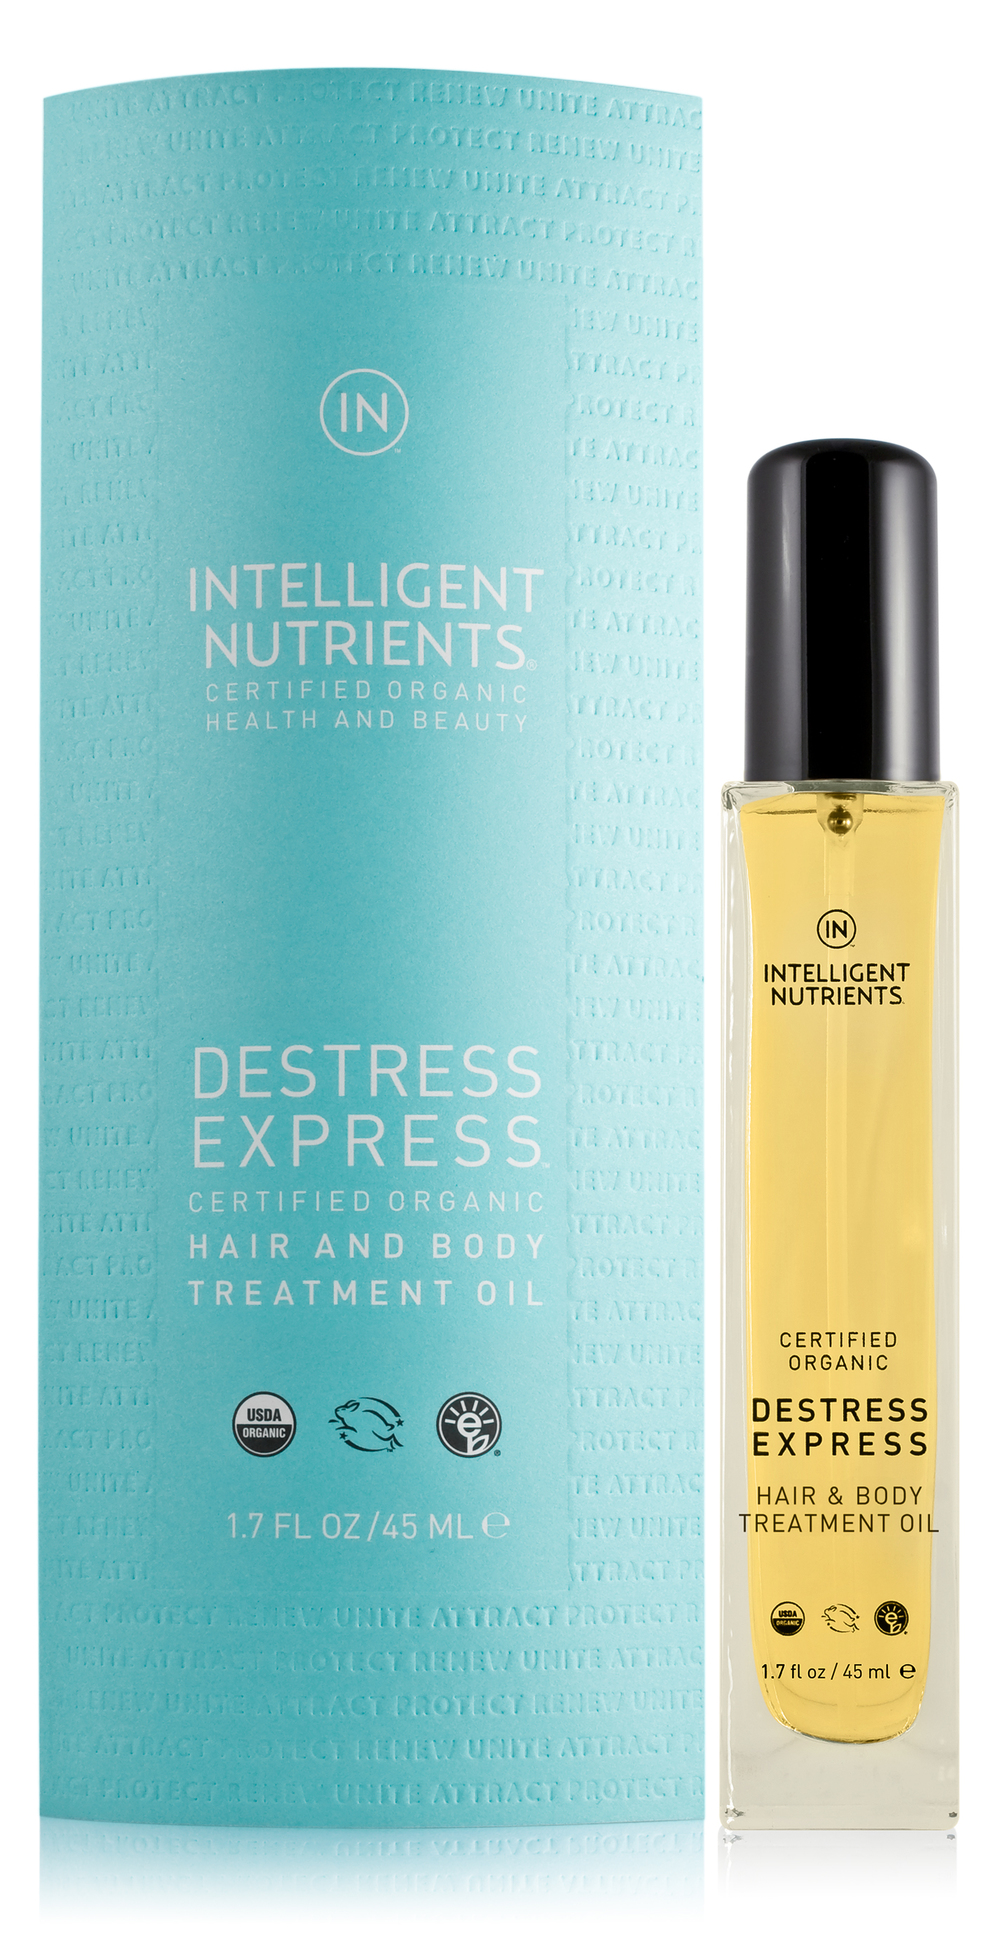 Destress Express™ Hair & Body Treatment Oil (DKK380/45ml)